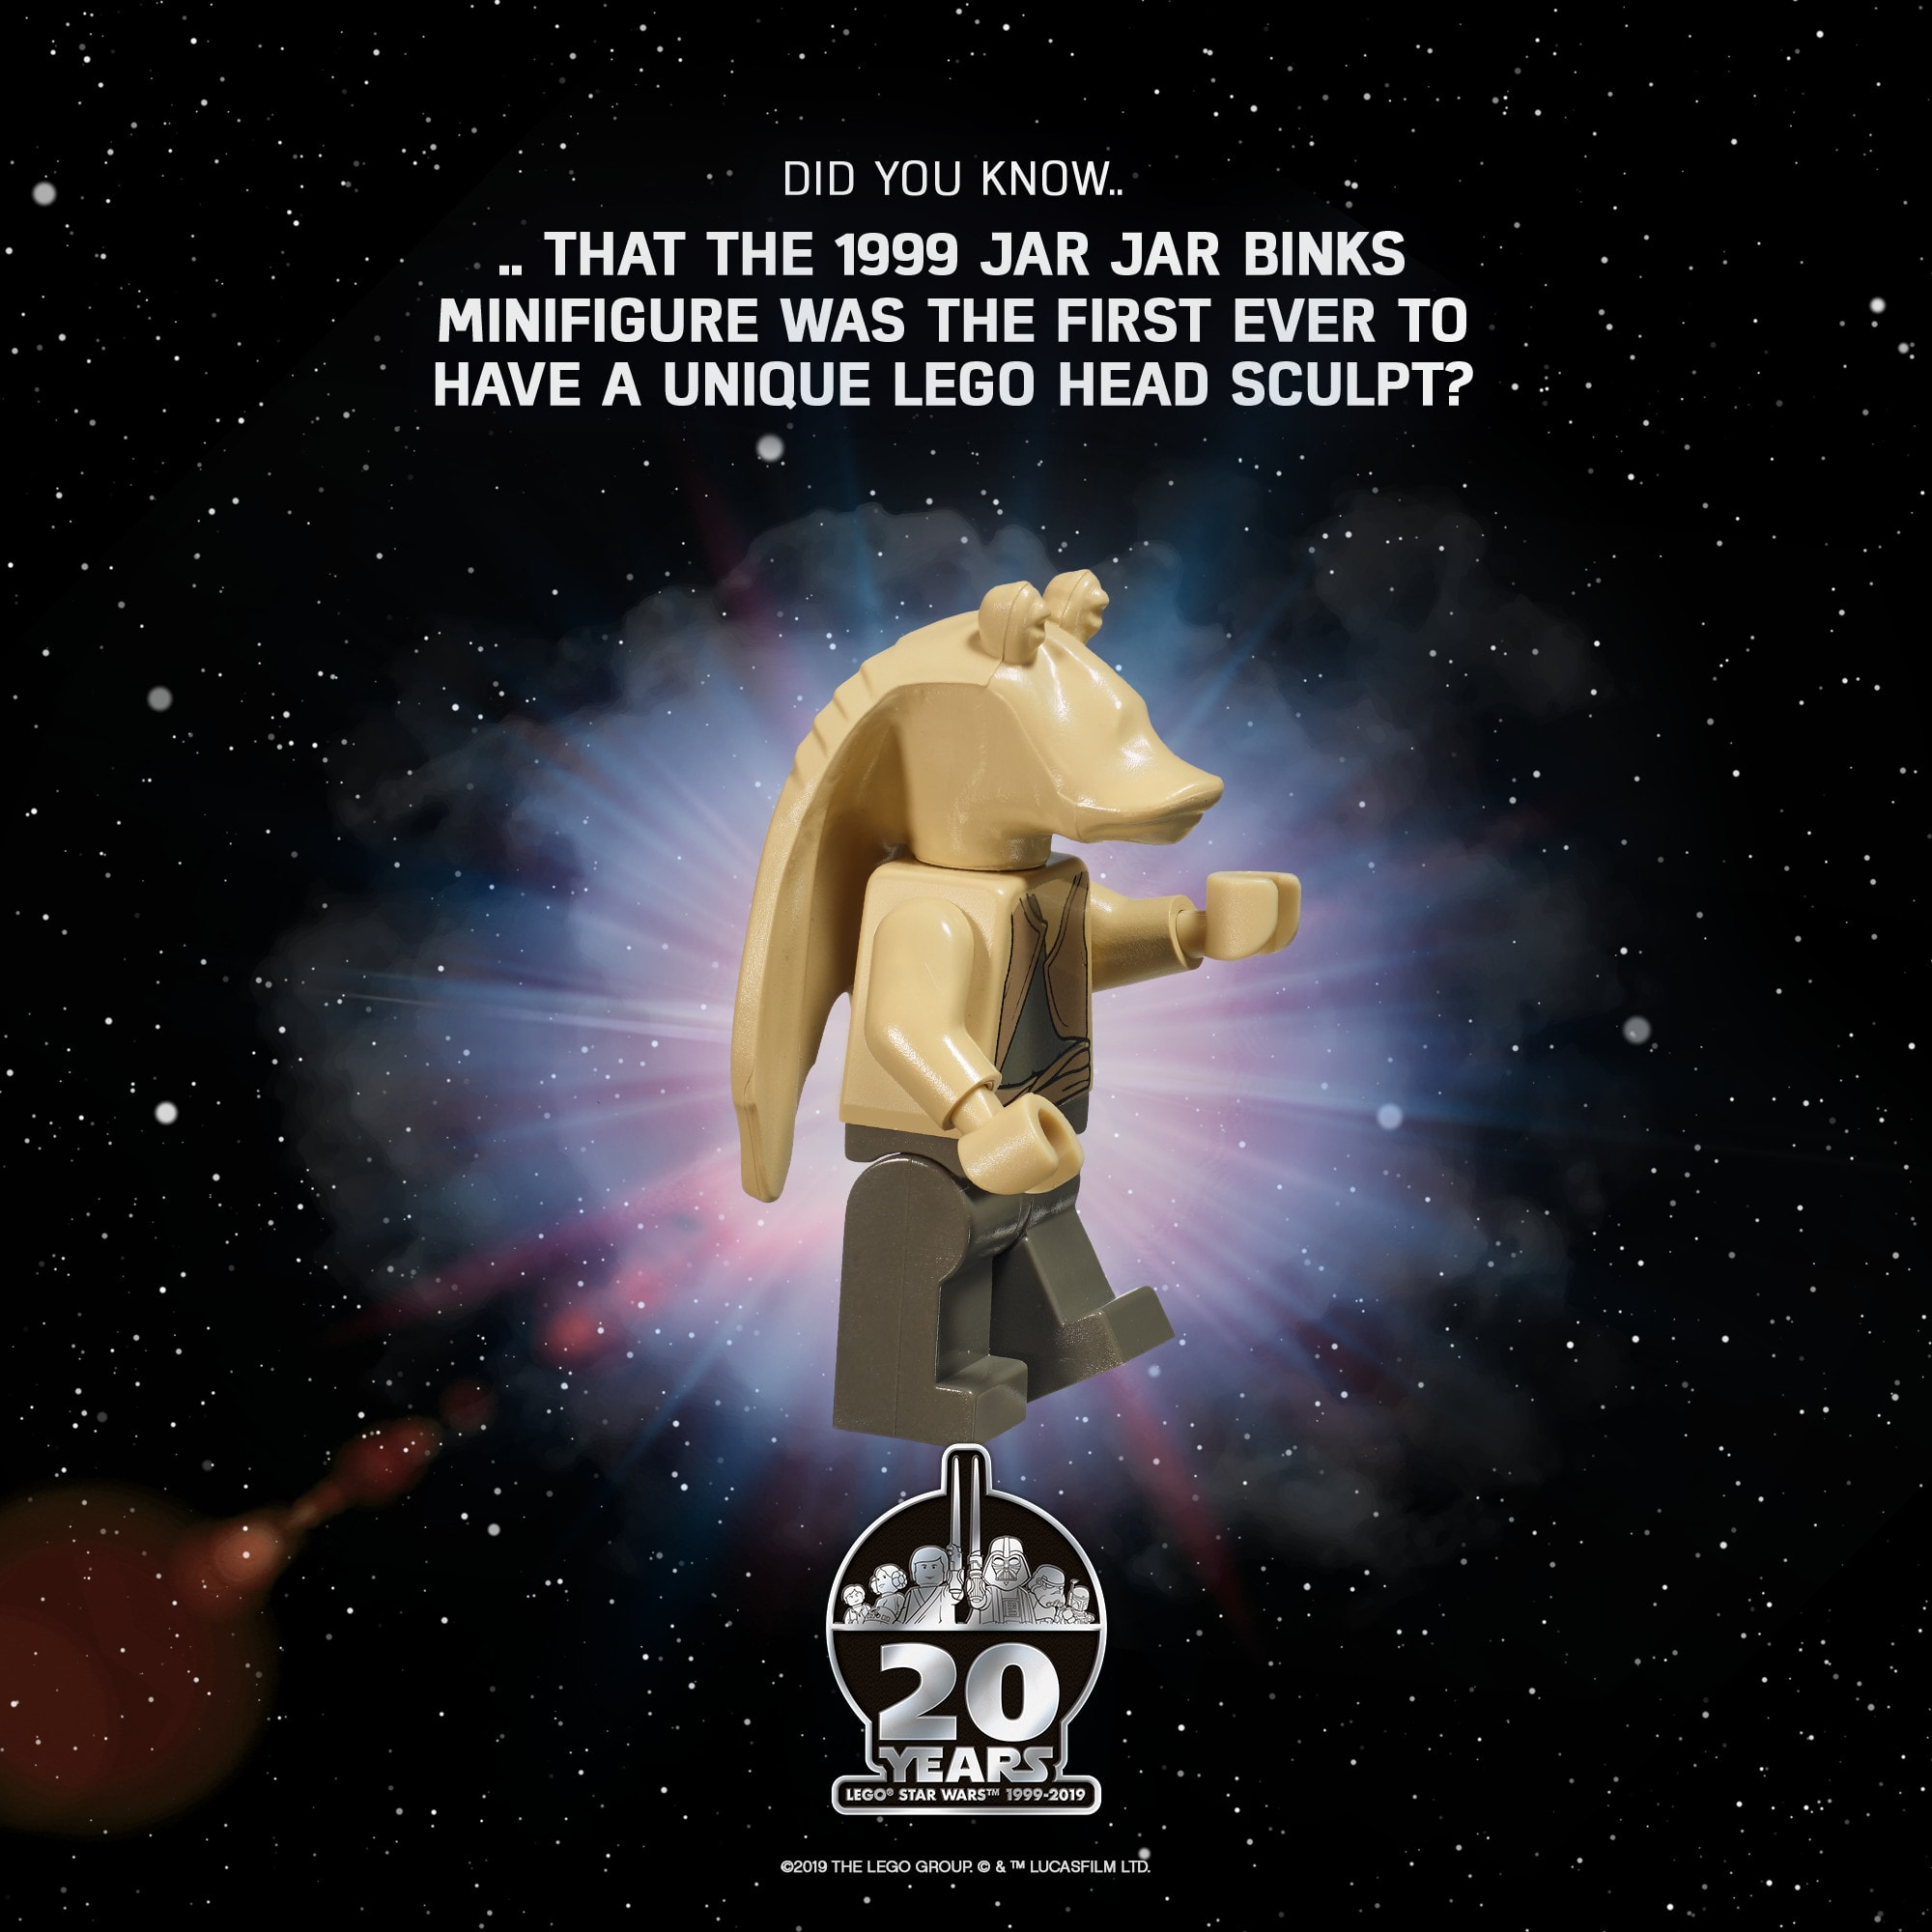 Jar Jar Binks has the distinction of being the very first unique LEGO head sculpt.